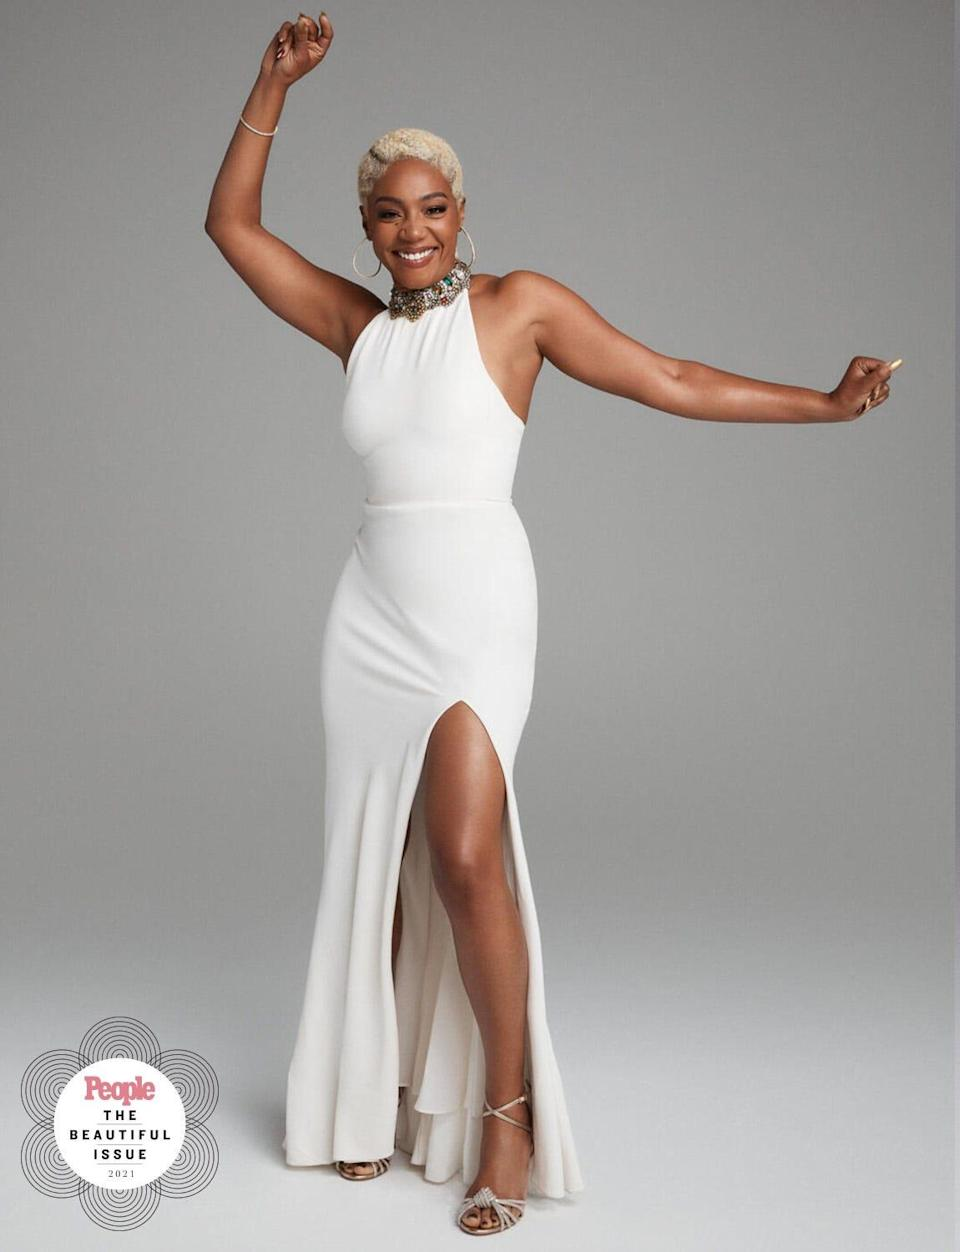 """Tiffany Haddish has re-worn her white Alexander McQueen gown, which she debuted at the 2017 premiere of her movie """"Girls Trip,"""" five times, most recently for People's 2021 Beautiful issue."""